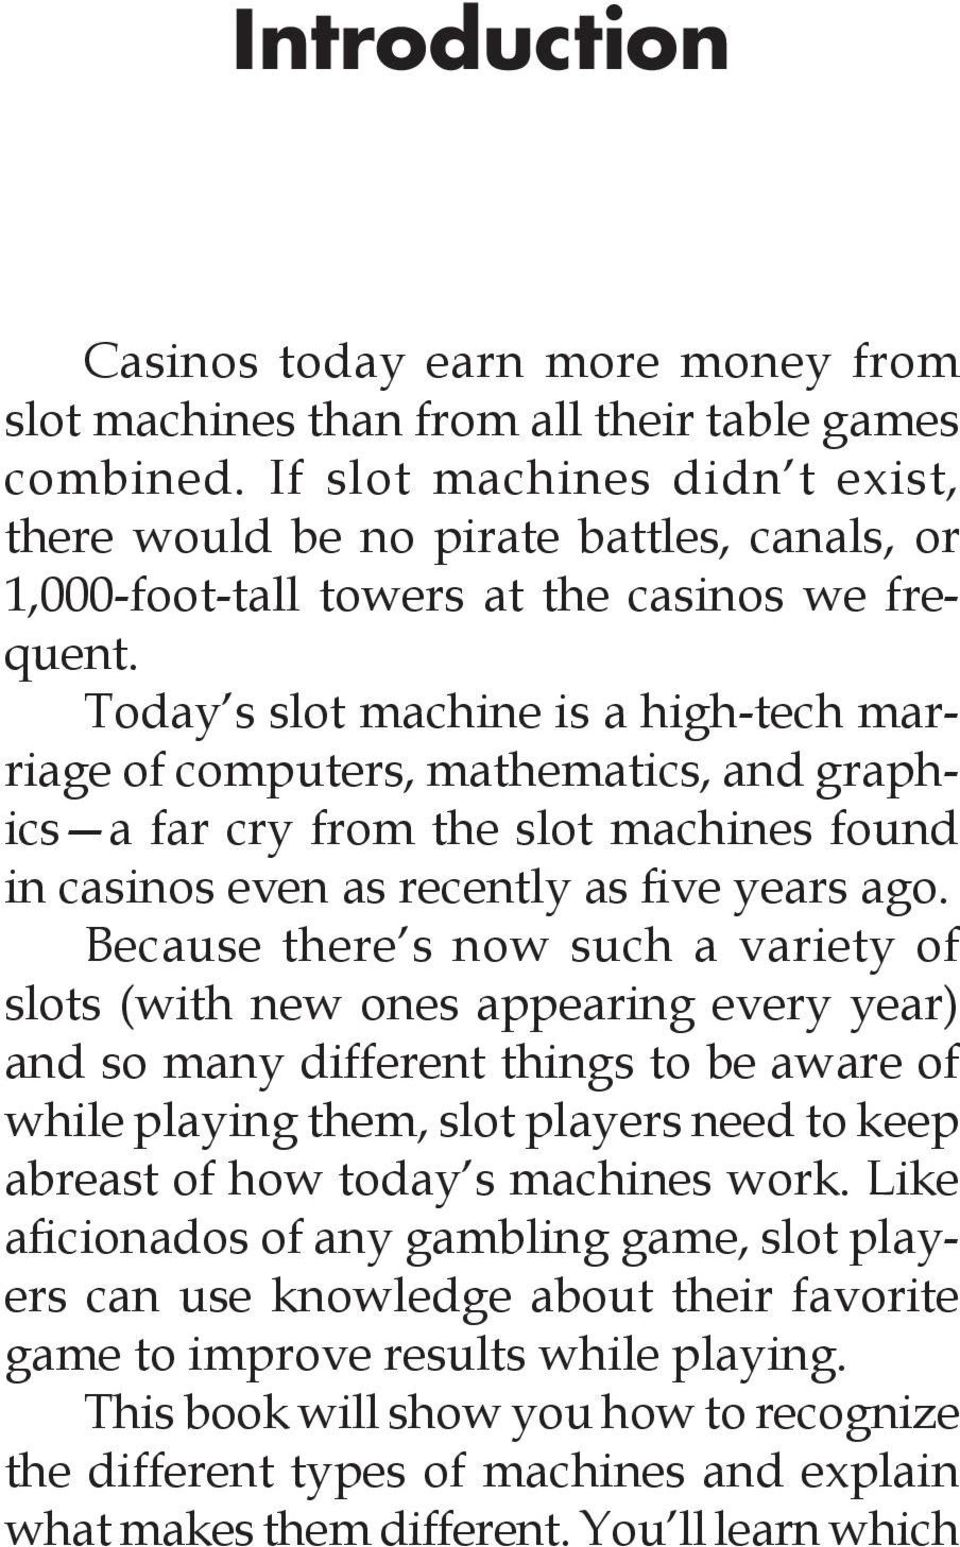 Today s slot machine is a high-tech marriage of computers, mathematics, and graphics a far cry from the slot machines found in casinos even as recently as five years ago.